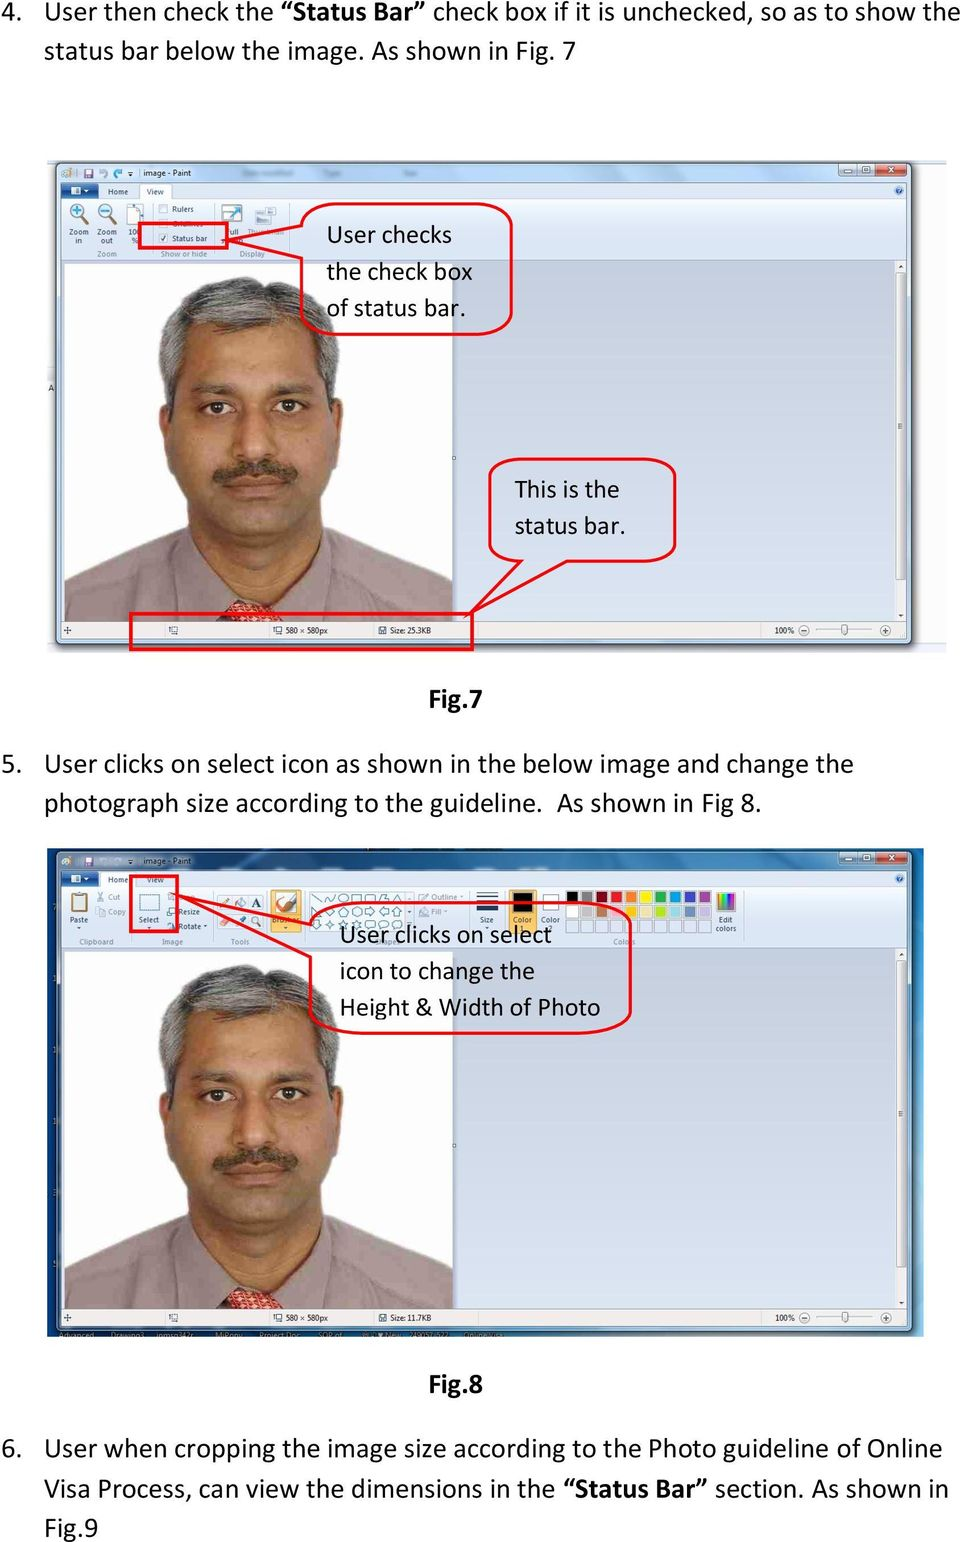 User clicks on select icon as shown in the below image and change the photograph size according to the guideline. As shown in Fig 8.